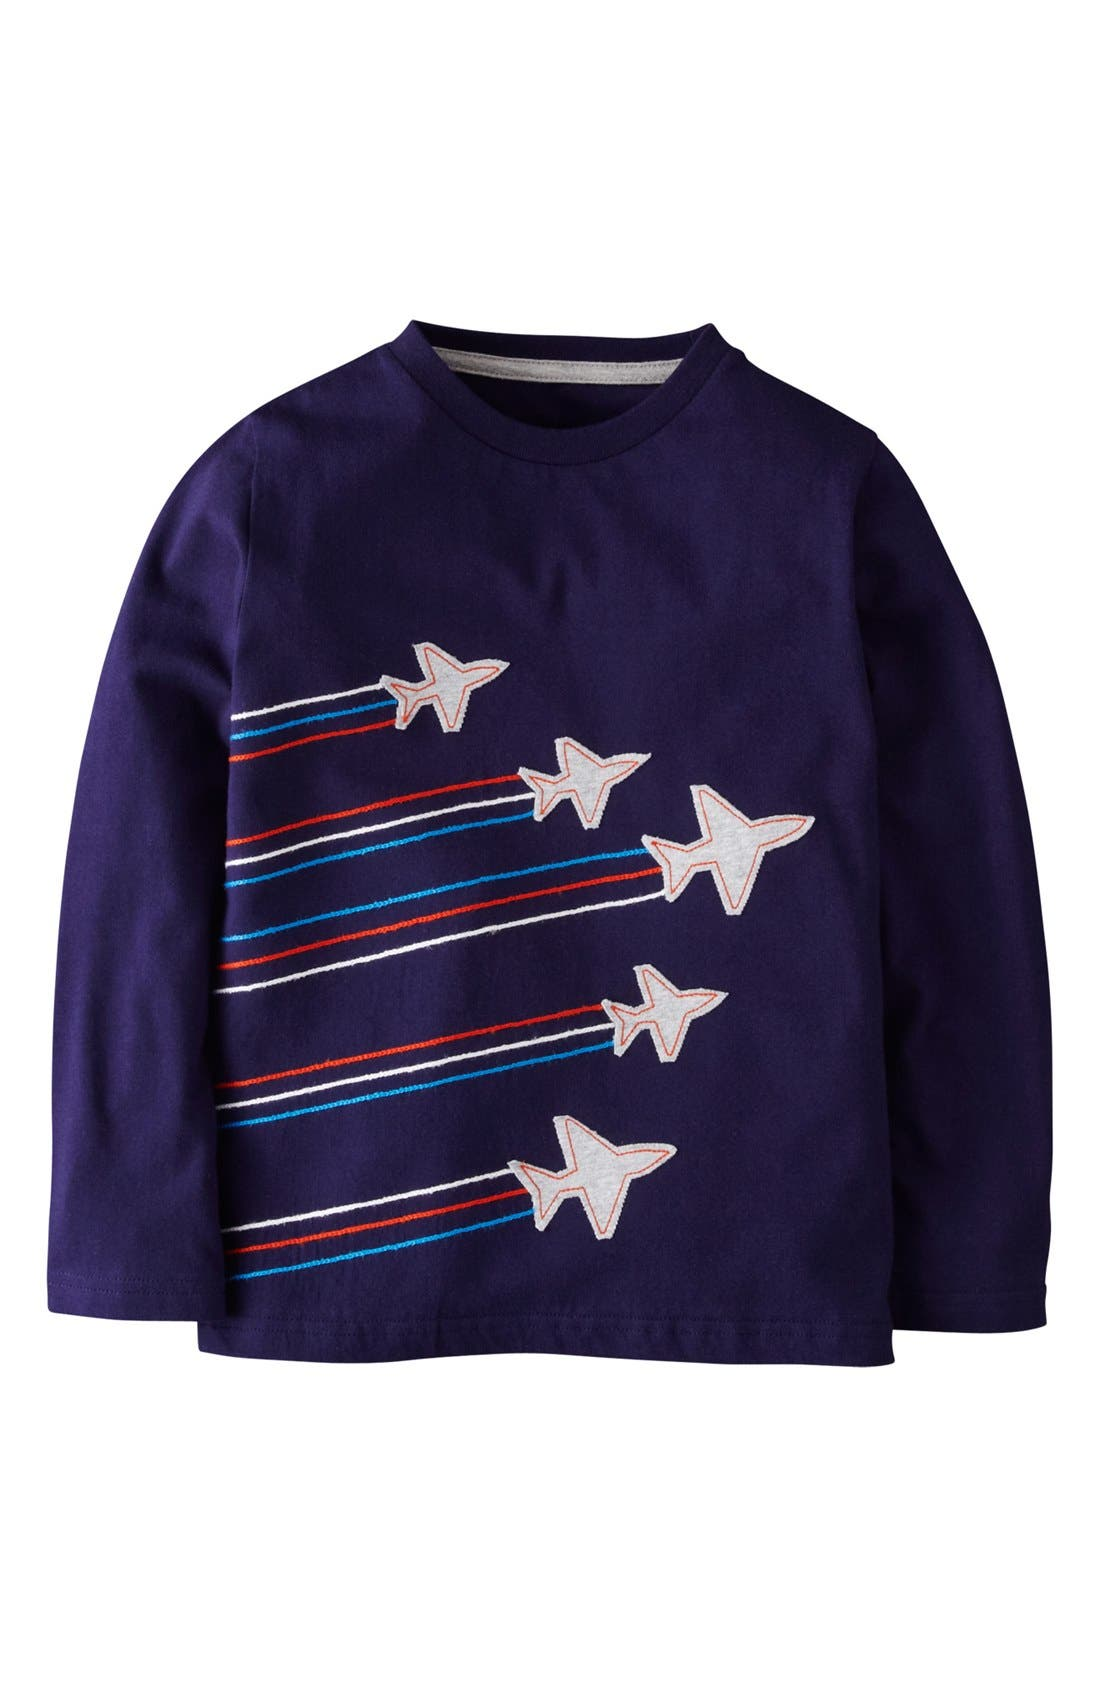 Alternate Image 1 Selected - Mini Boden Embroidered Appliqué T-Shirt (Toddler Boys, Little Boys & Big Boys)